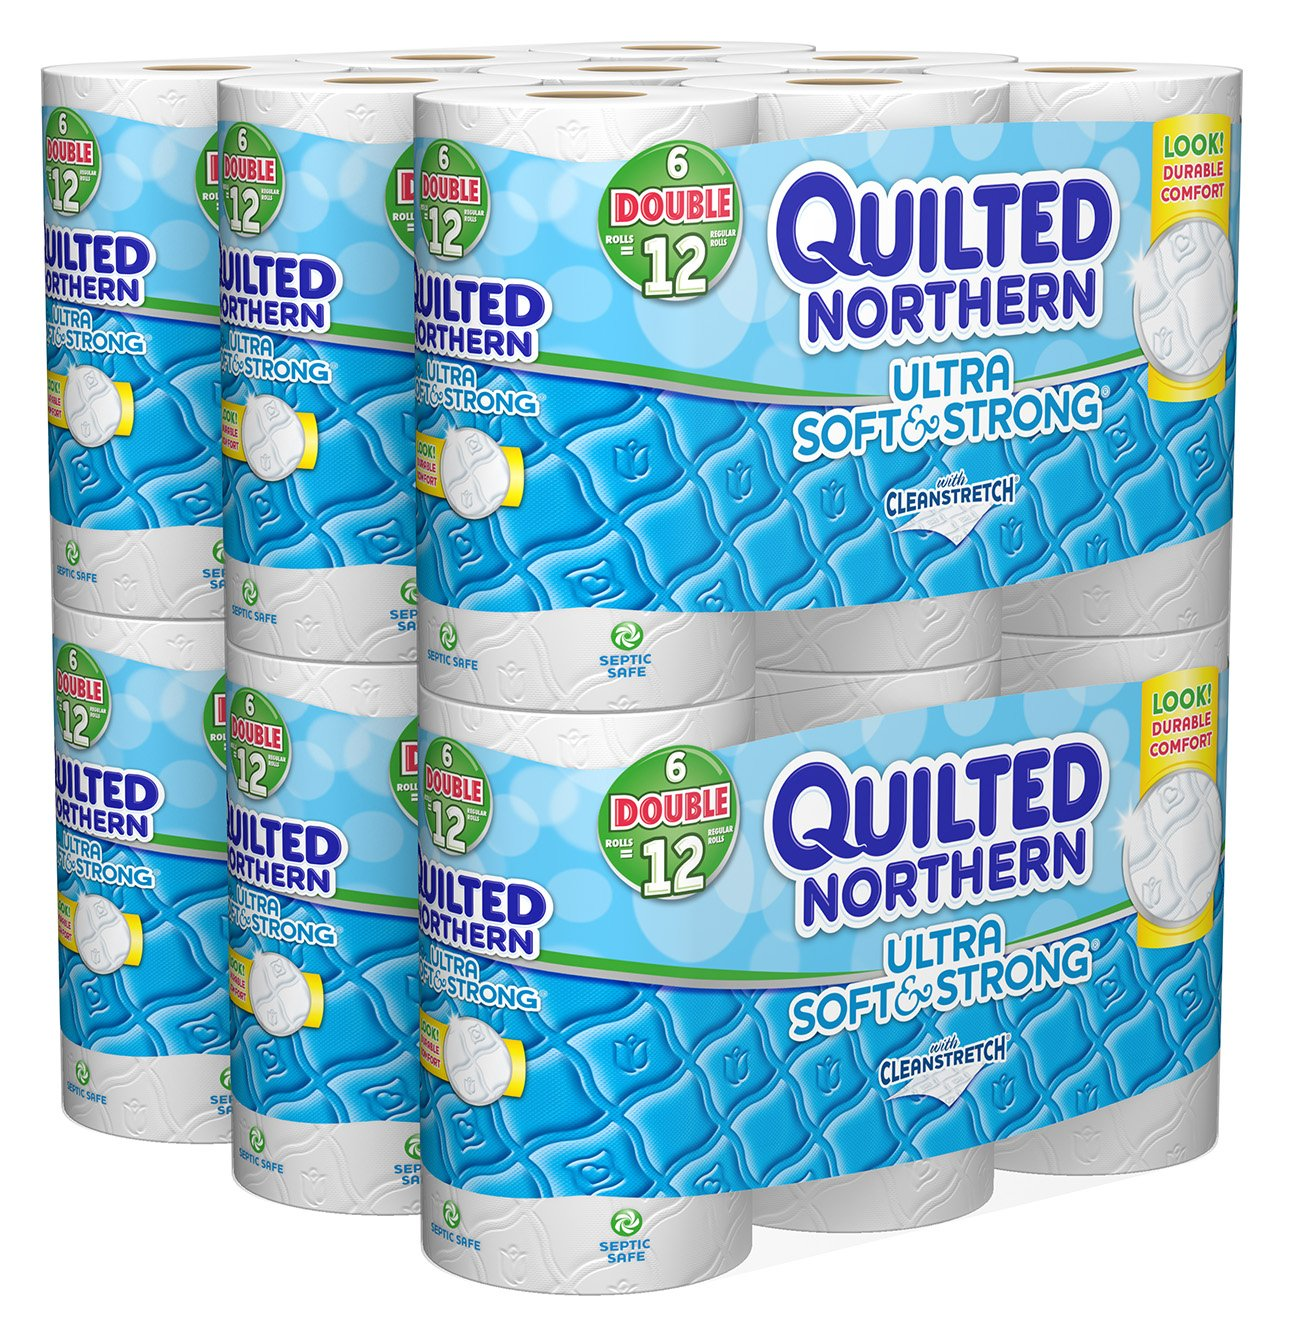 northern plush personal count quilted dp amazon health bath care tissue quilt ultra com